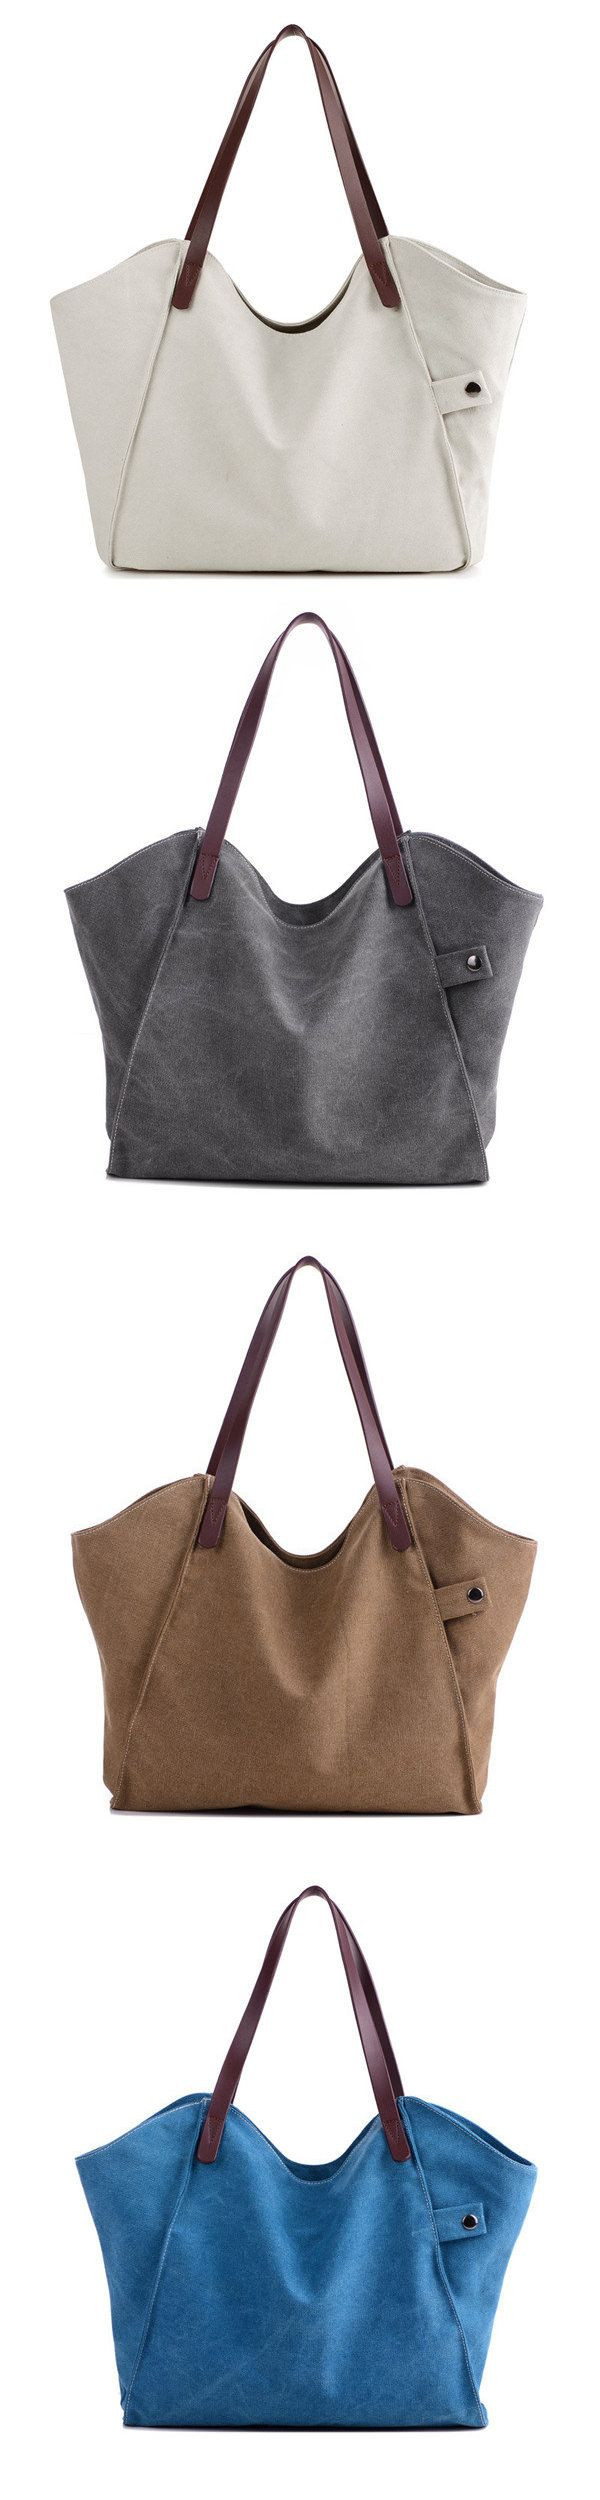 Casual Durable Thicker Canvas Handbag Light Casual Large Capacity Shoulder Bag For Women